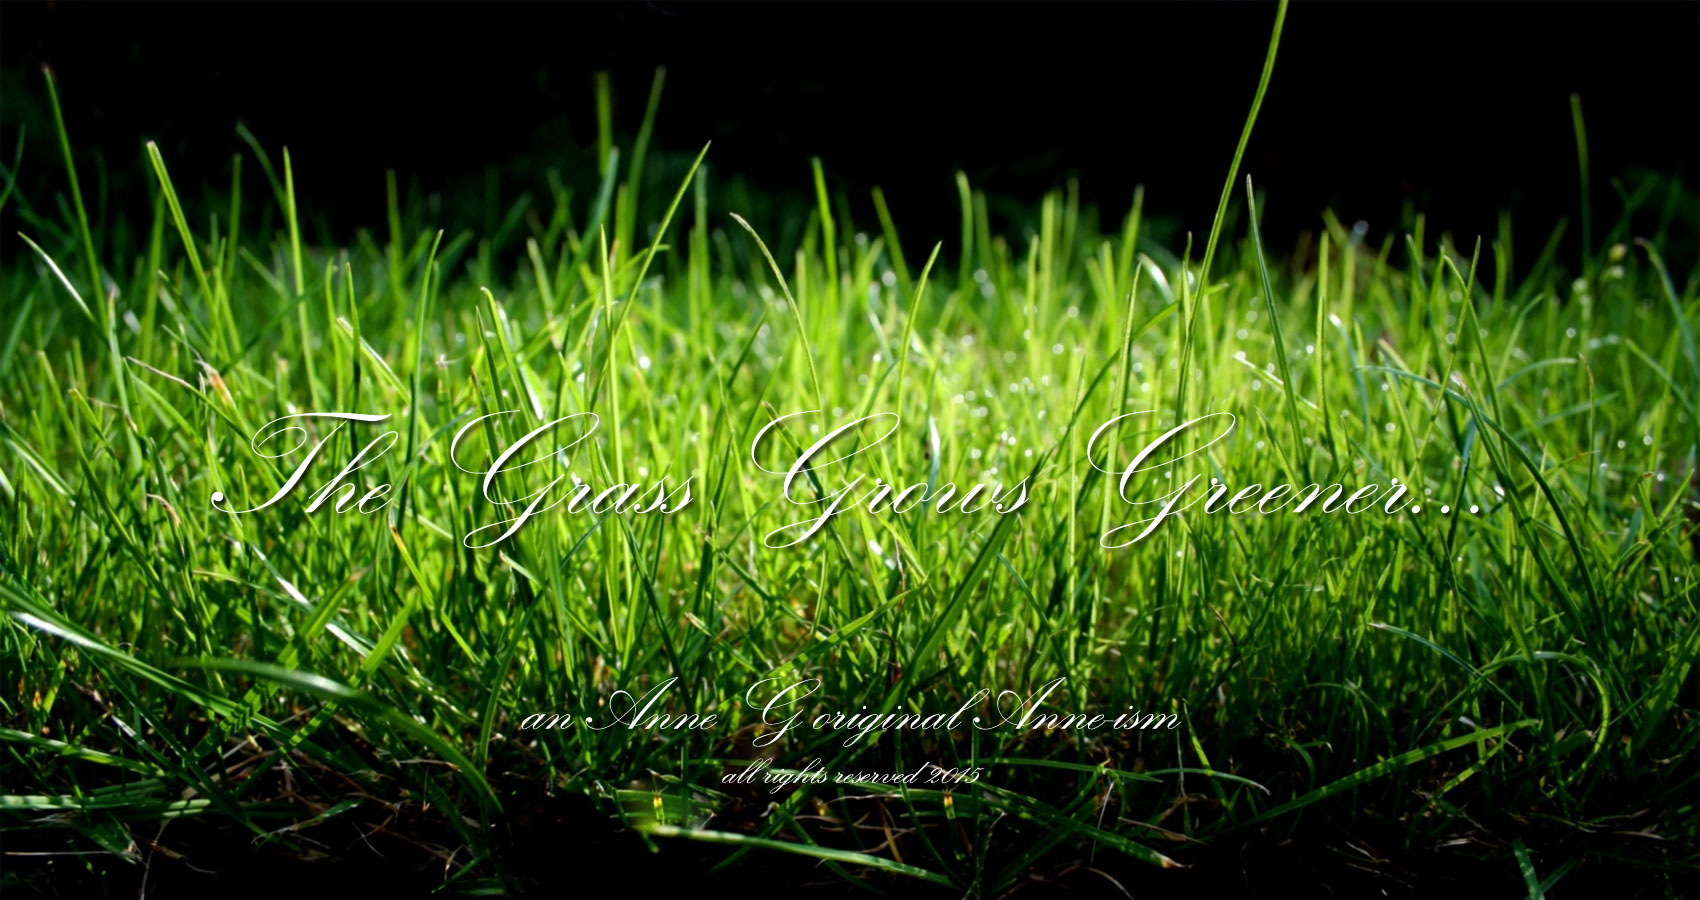 spillwords.com The Grass Is Greener An Anne G Original Anne-ism